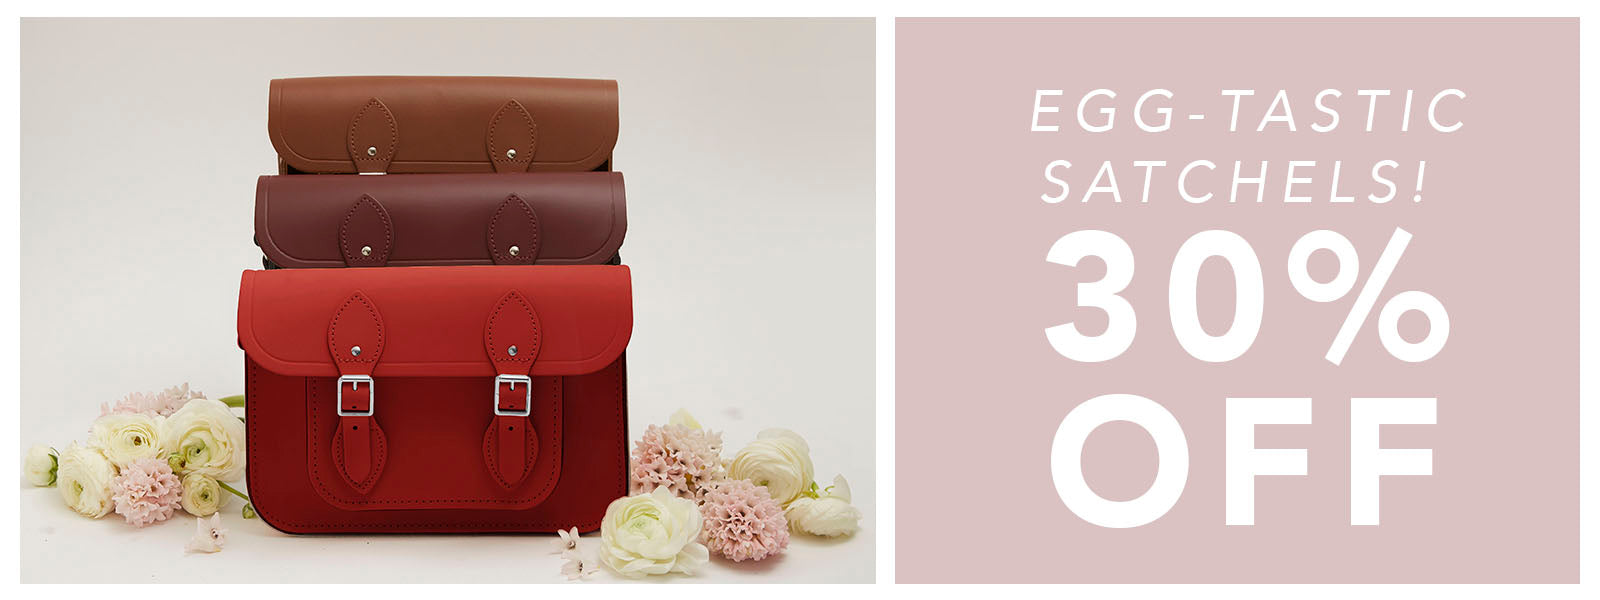 Egg-Tastic Satchels - 30% off - Cambridge Satchel